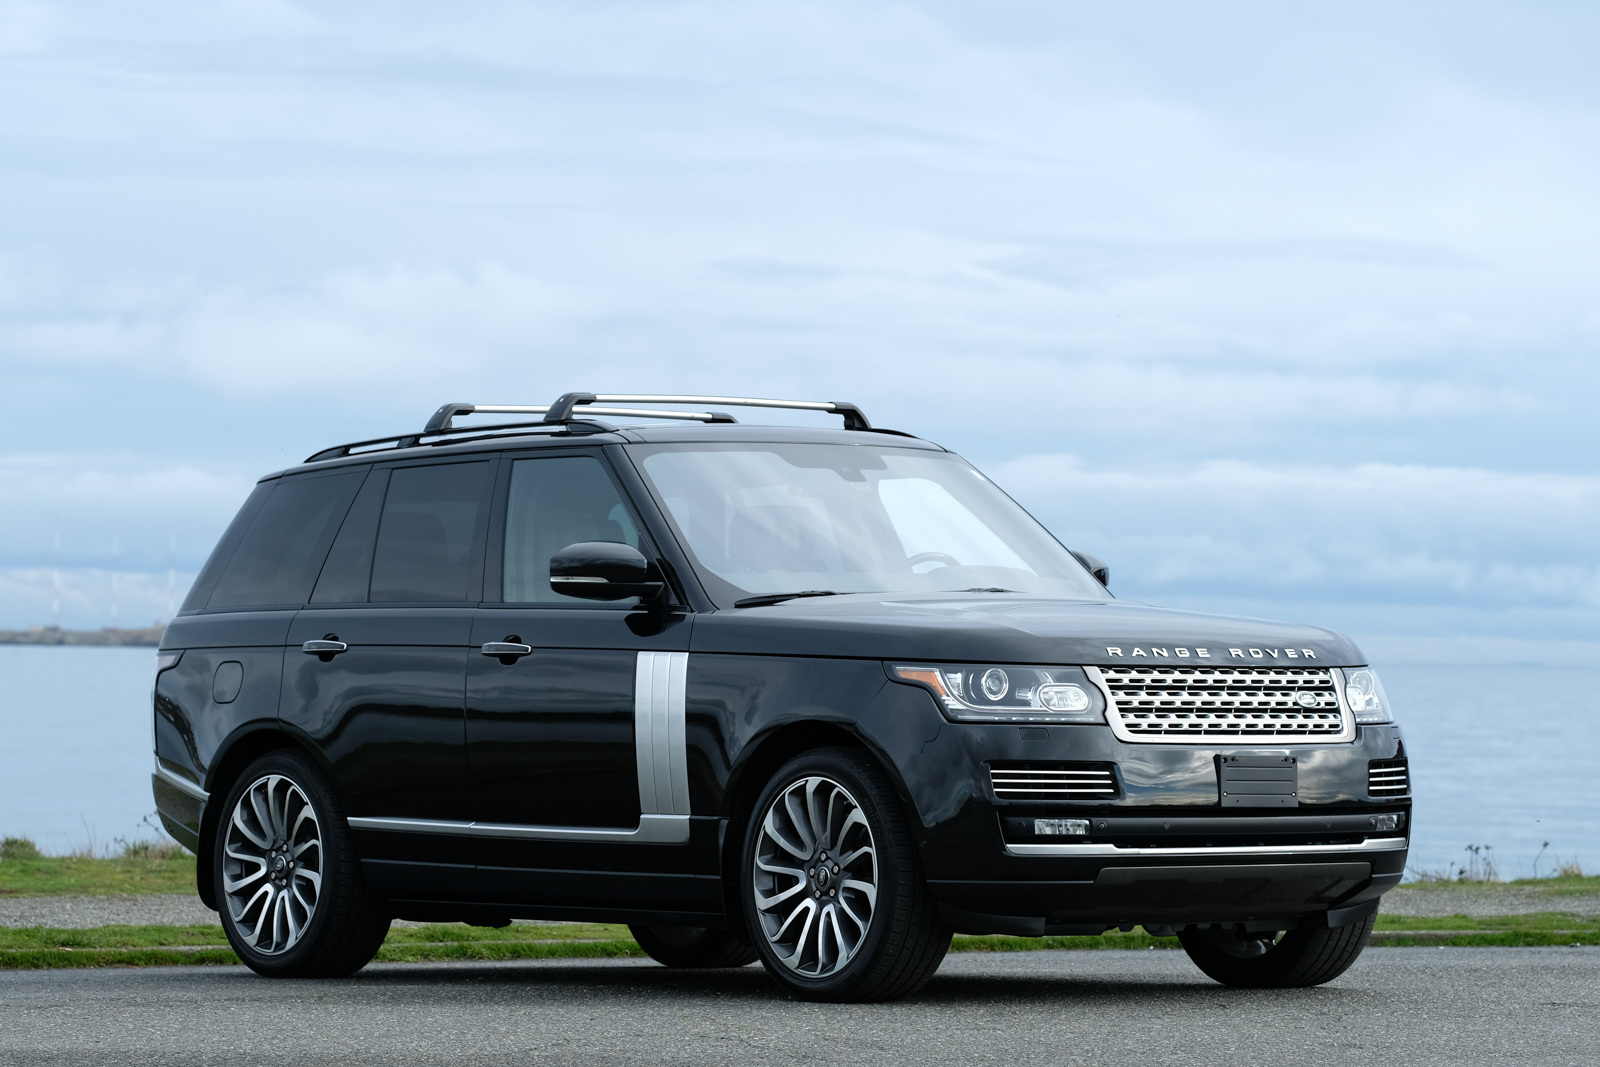 2014 range rover autobiography sc silver arrow cars ltd. Black Bedroom Furniture Sets. Home Design Ideas